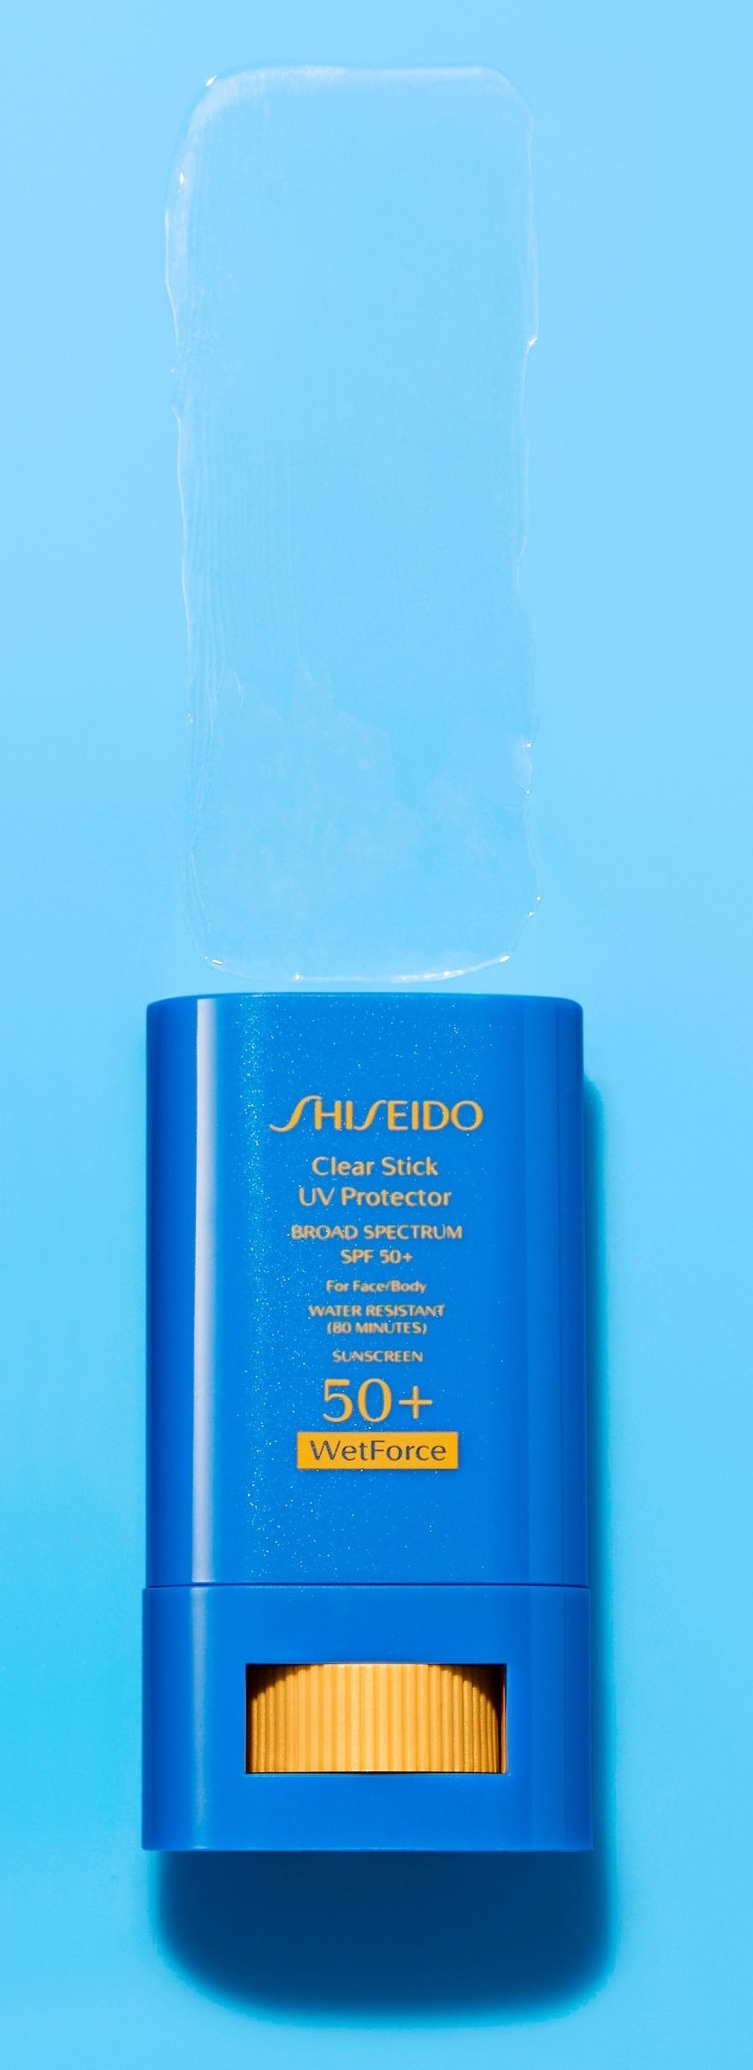 Shiseido clear stick SPF sunscreen